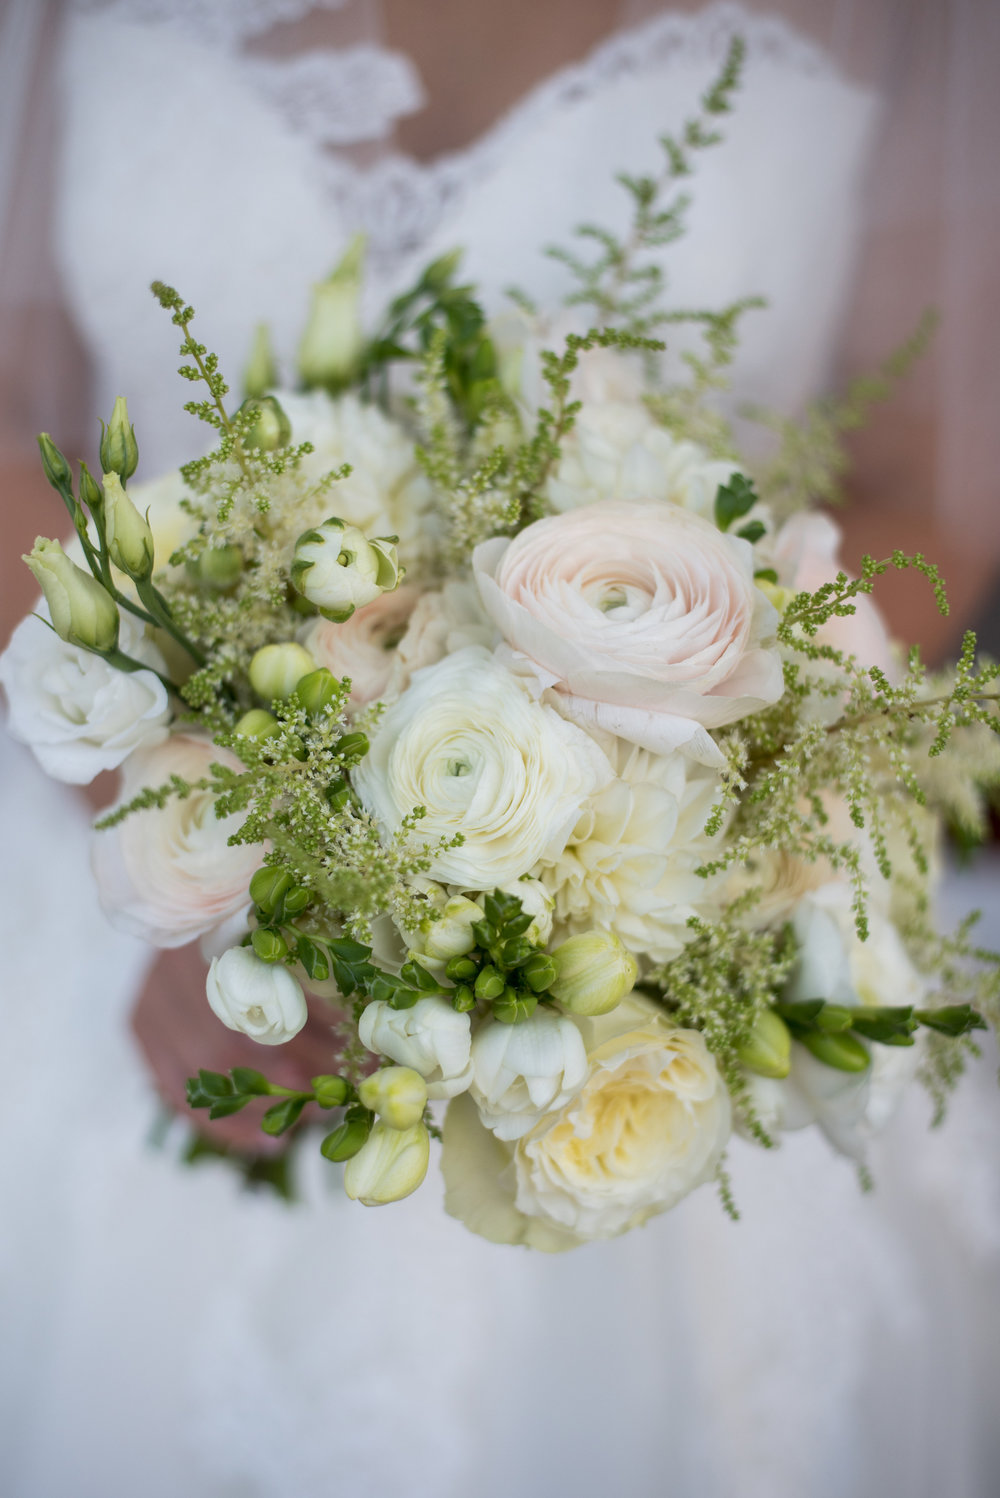 KATY-AND-TOM-HINGHAM-MASSACHUSETTS-WEDDING-DESTINATION-LUXURY-WEDDING-CATHOLIC-CHURCH-BACK-YARD-SPERRY-SAIL-CLOTH-TENT-COASTAL-CHIC-TIMELESS-ROMANTIC-BOUQUET-DAVID-RUNUNCULOUS-ASTILBE-FREESIA-GARDEN-ROSES-LISIANTHUS